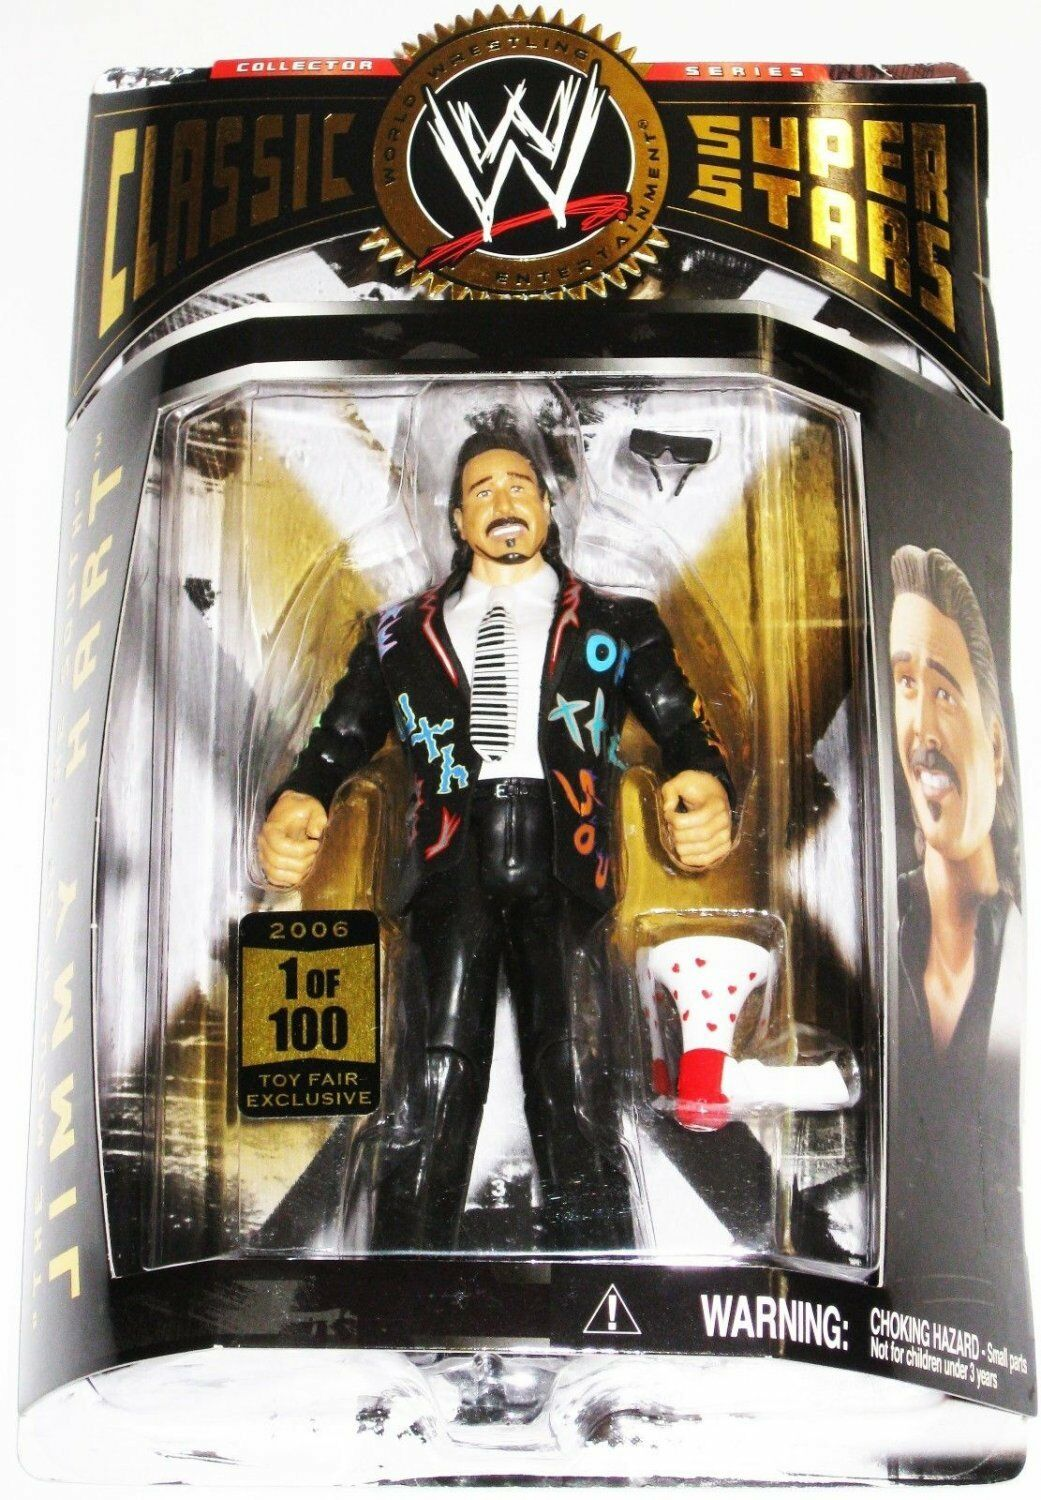 WWE CLASSIC SUPERSTARS JIMMY HART 1 OF 100 1 100 TOY ACTION FIGURE MOC